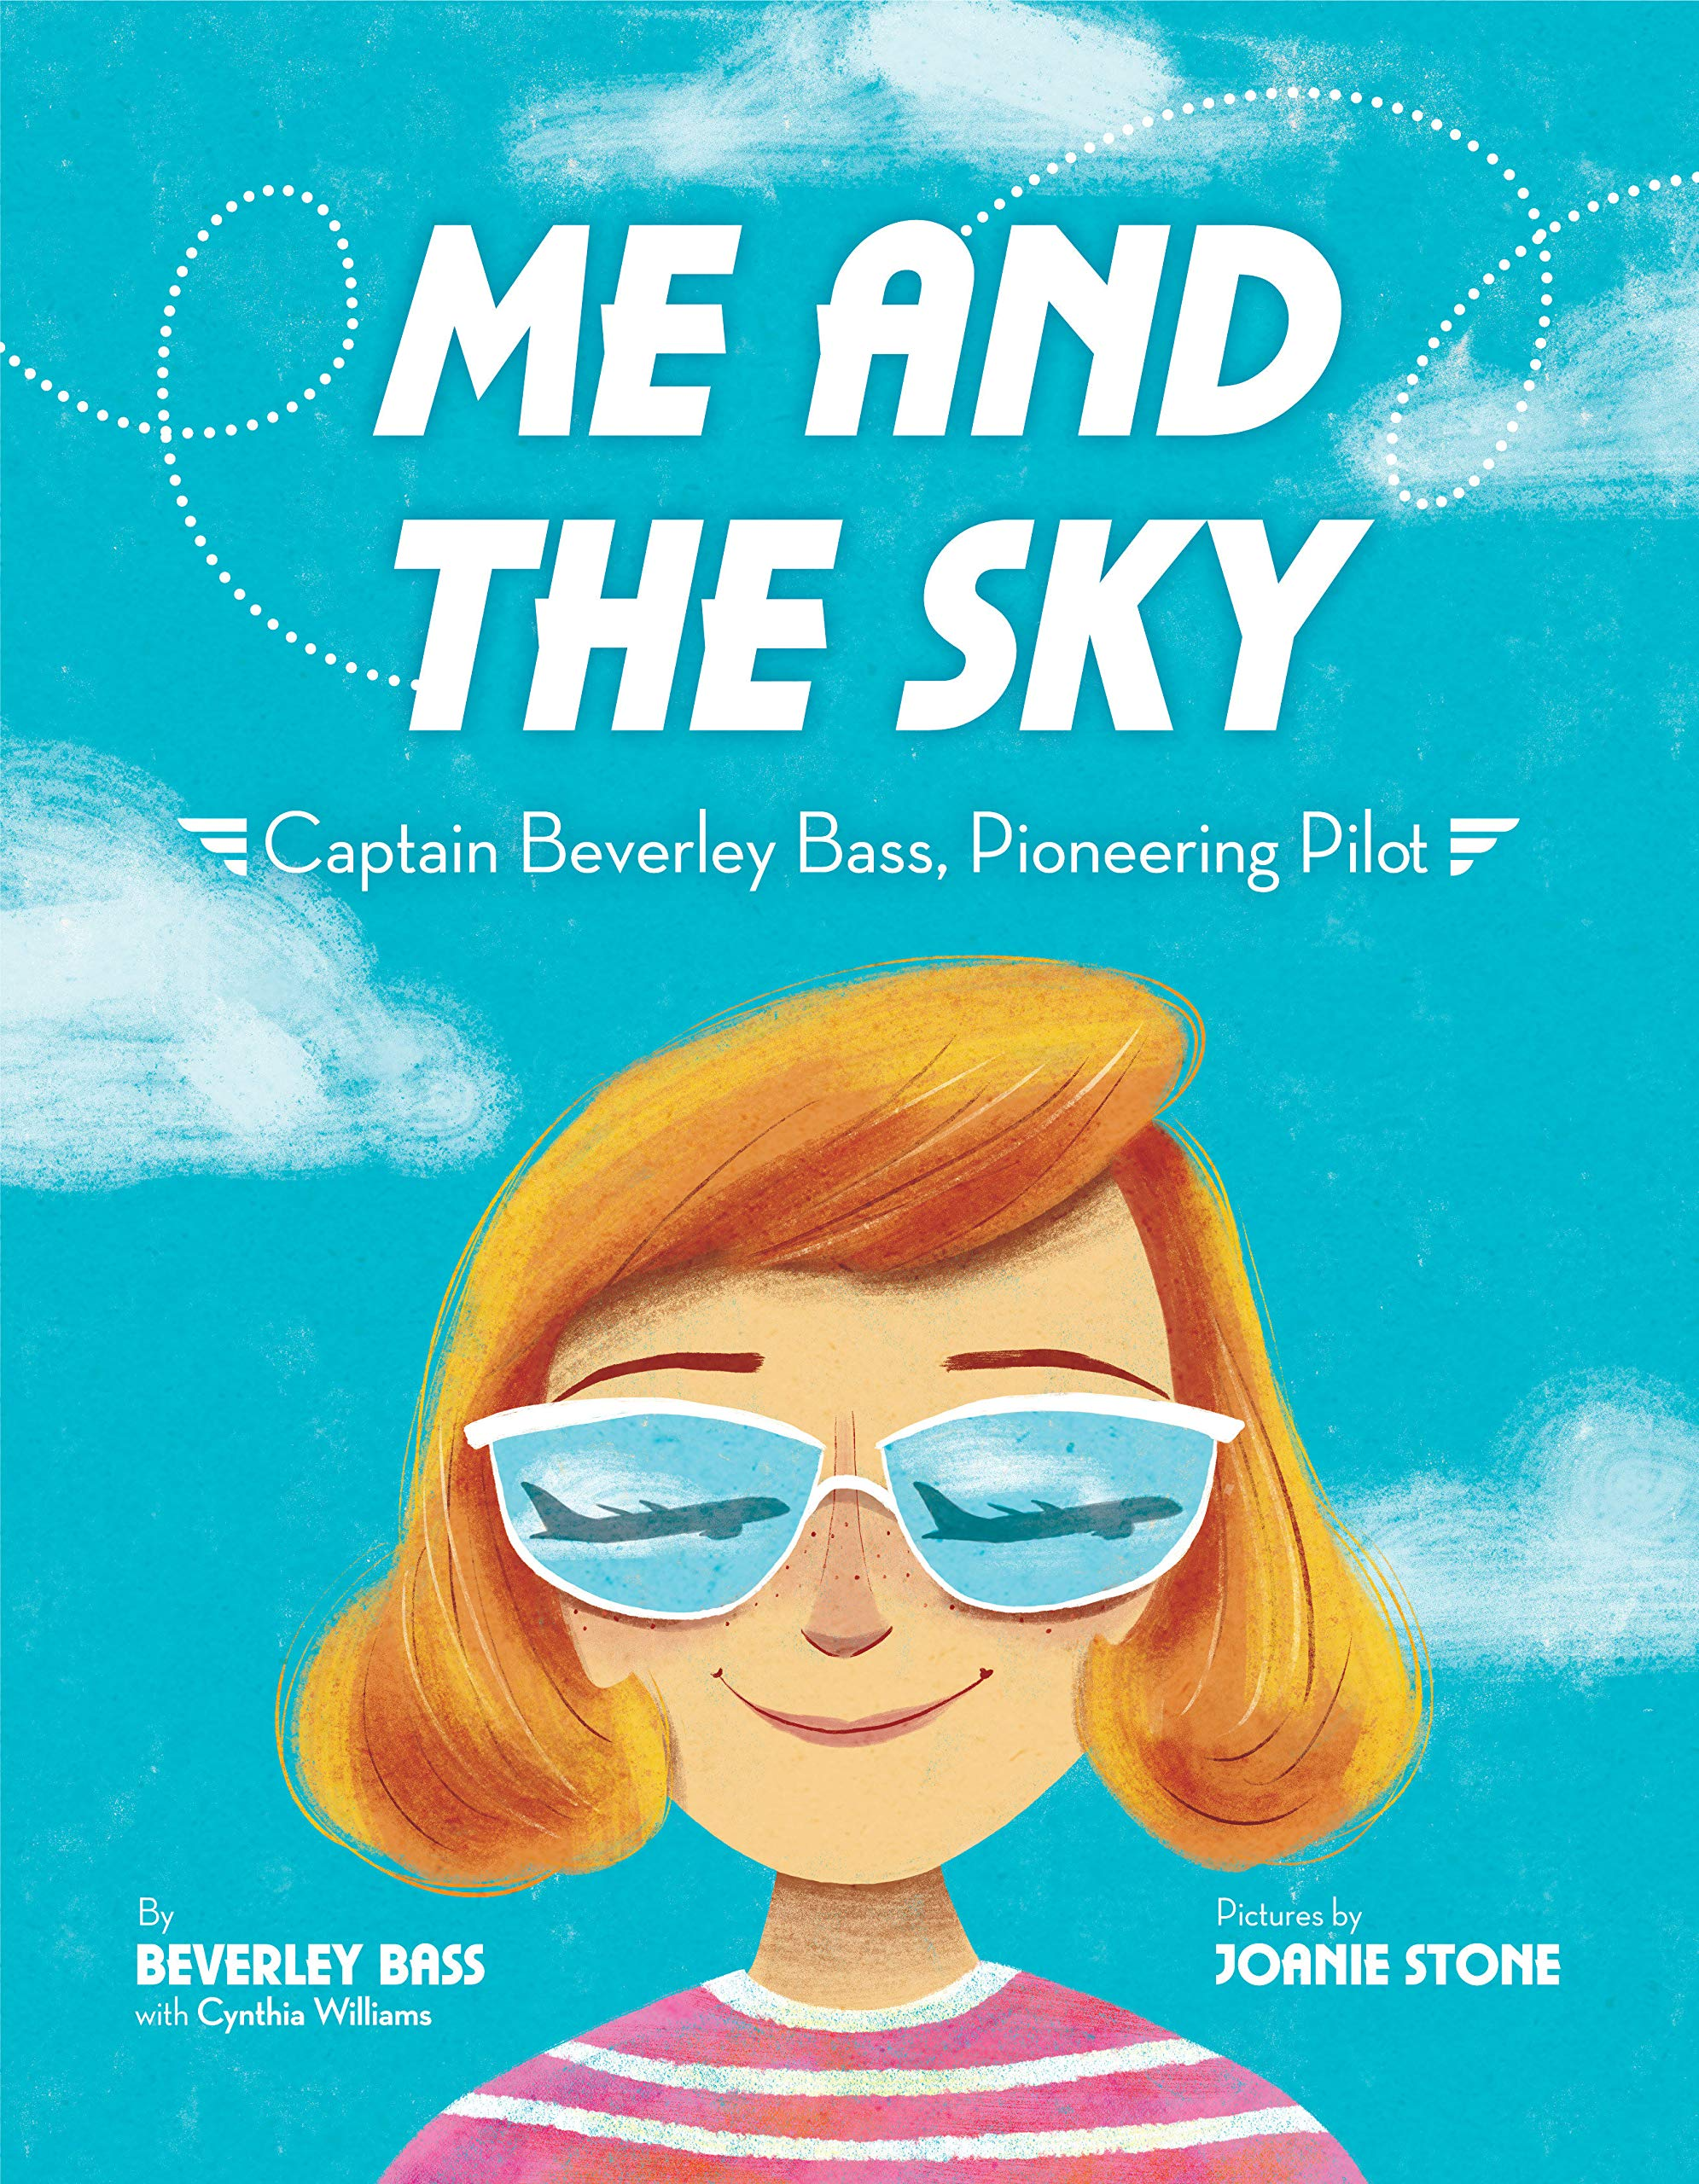 Me and the Sky: Captain Beverley Bass, Pioneering Pilot: Bass, Beverley,  Williams, Cynthia, Stone, Joanie: 9780525645498: Amazon.com: Books